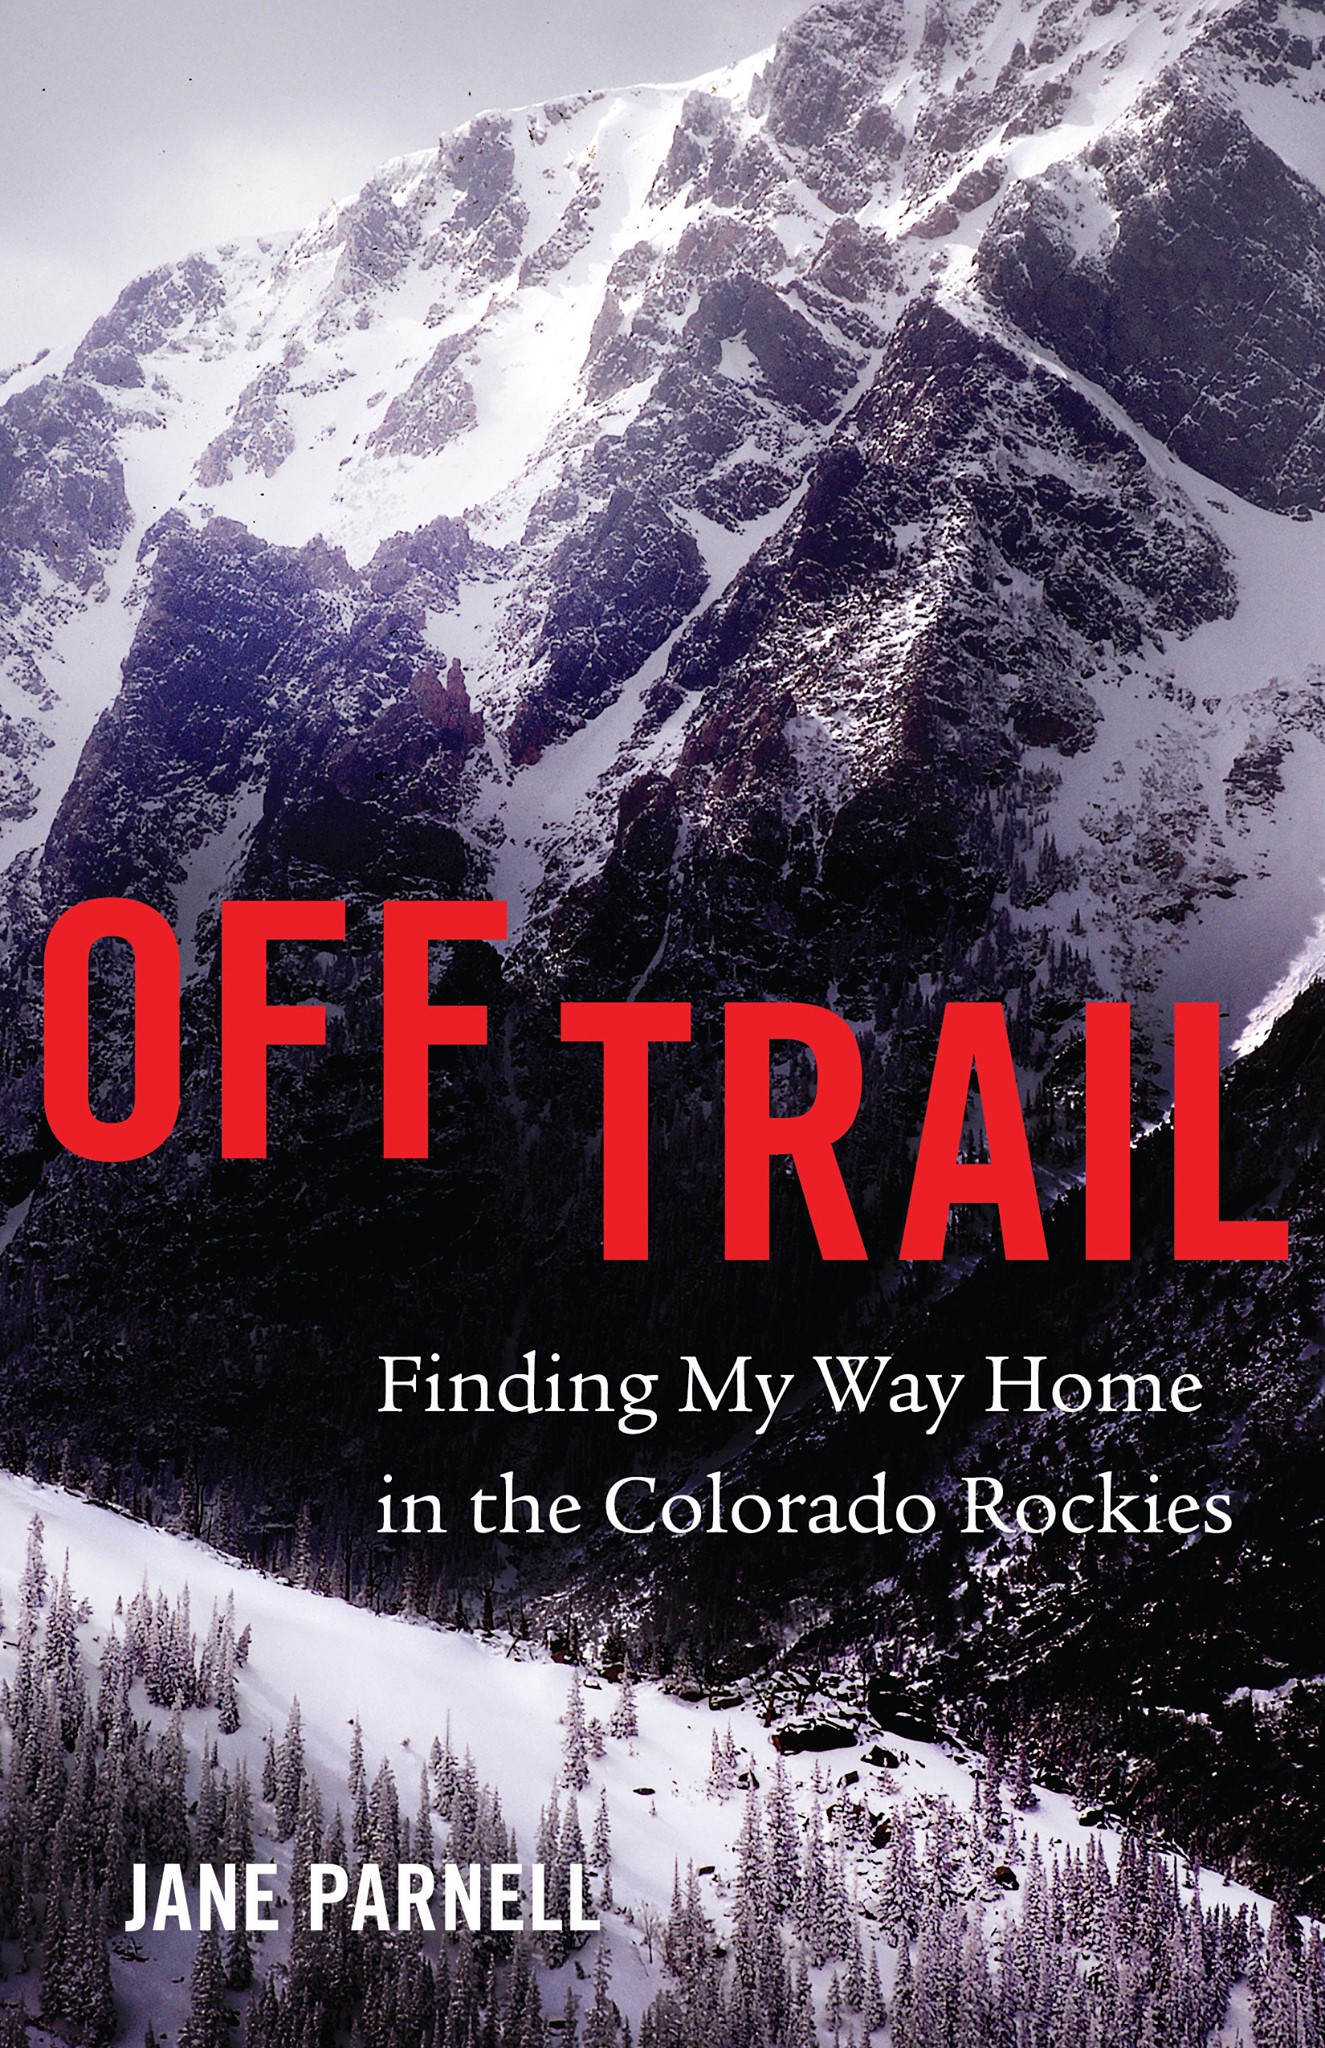 Off Trail Event at Pine Needle Dry Goods